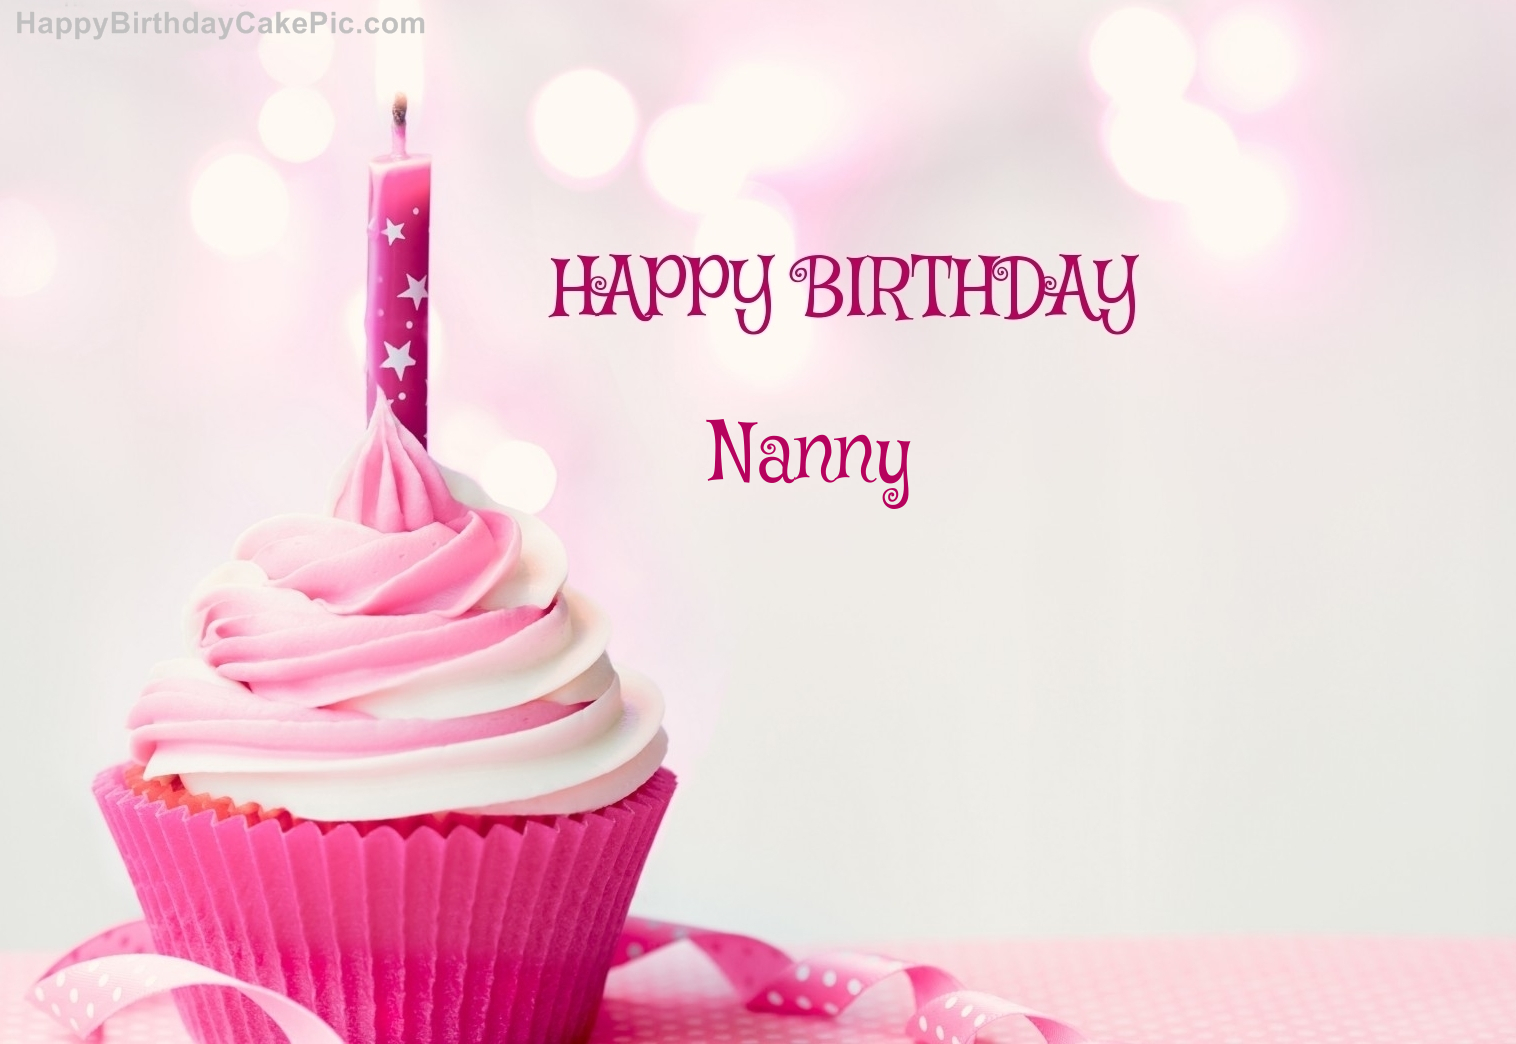 Happy Birthday Cupcake Candle Pink Cake For Nanny